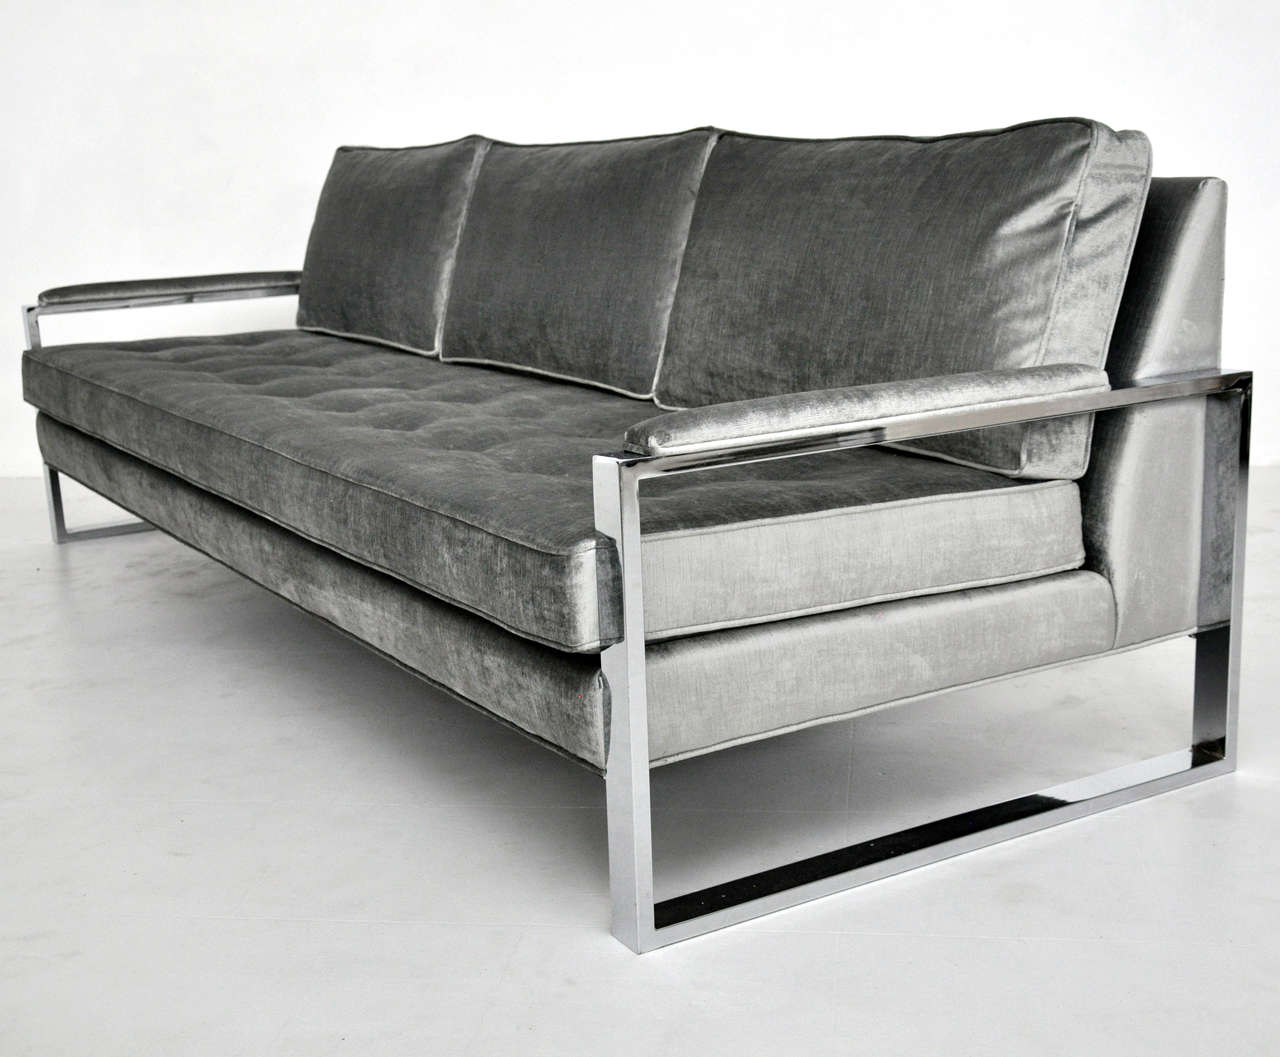 Milo baughman chrome frame sofa at 1stdibs Steel frame sofa